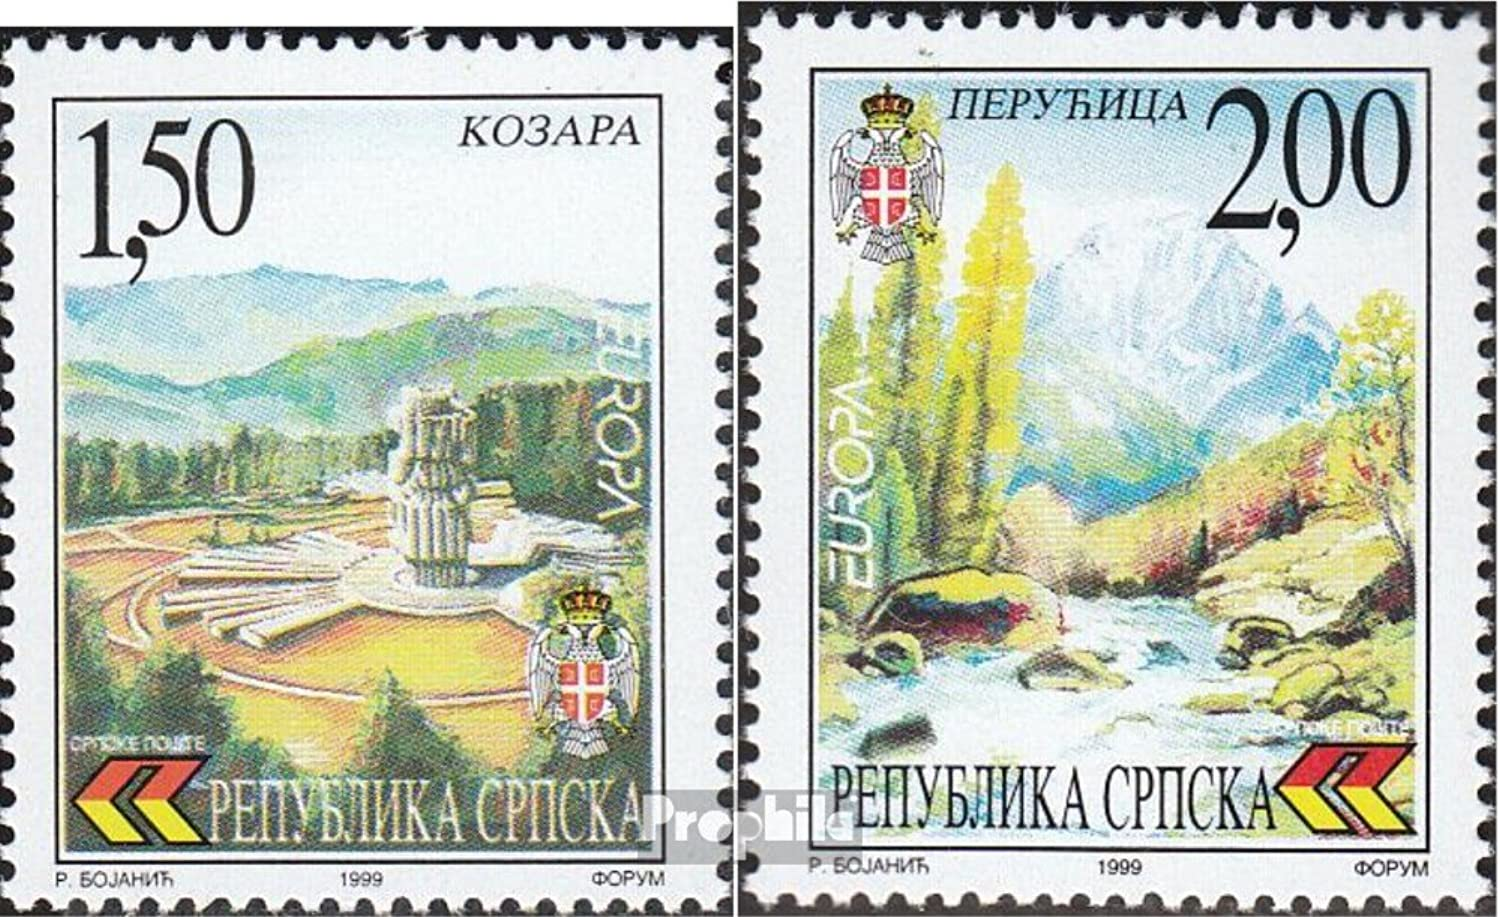 Serbian Republic bos.h 125126 (complete.issue.) 1999 Nature and National (Stamps for collectors) Landscapes